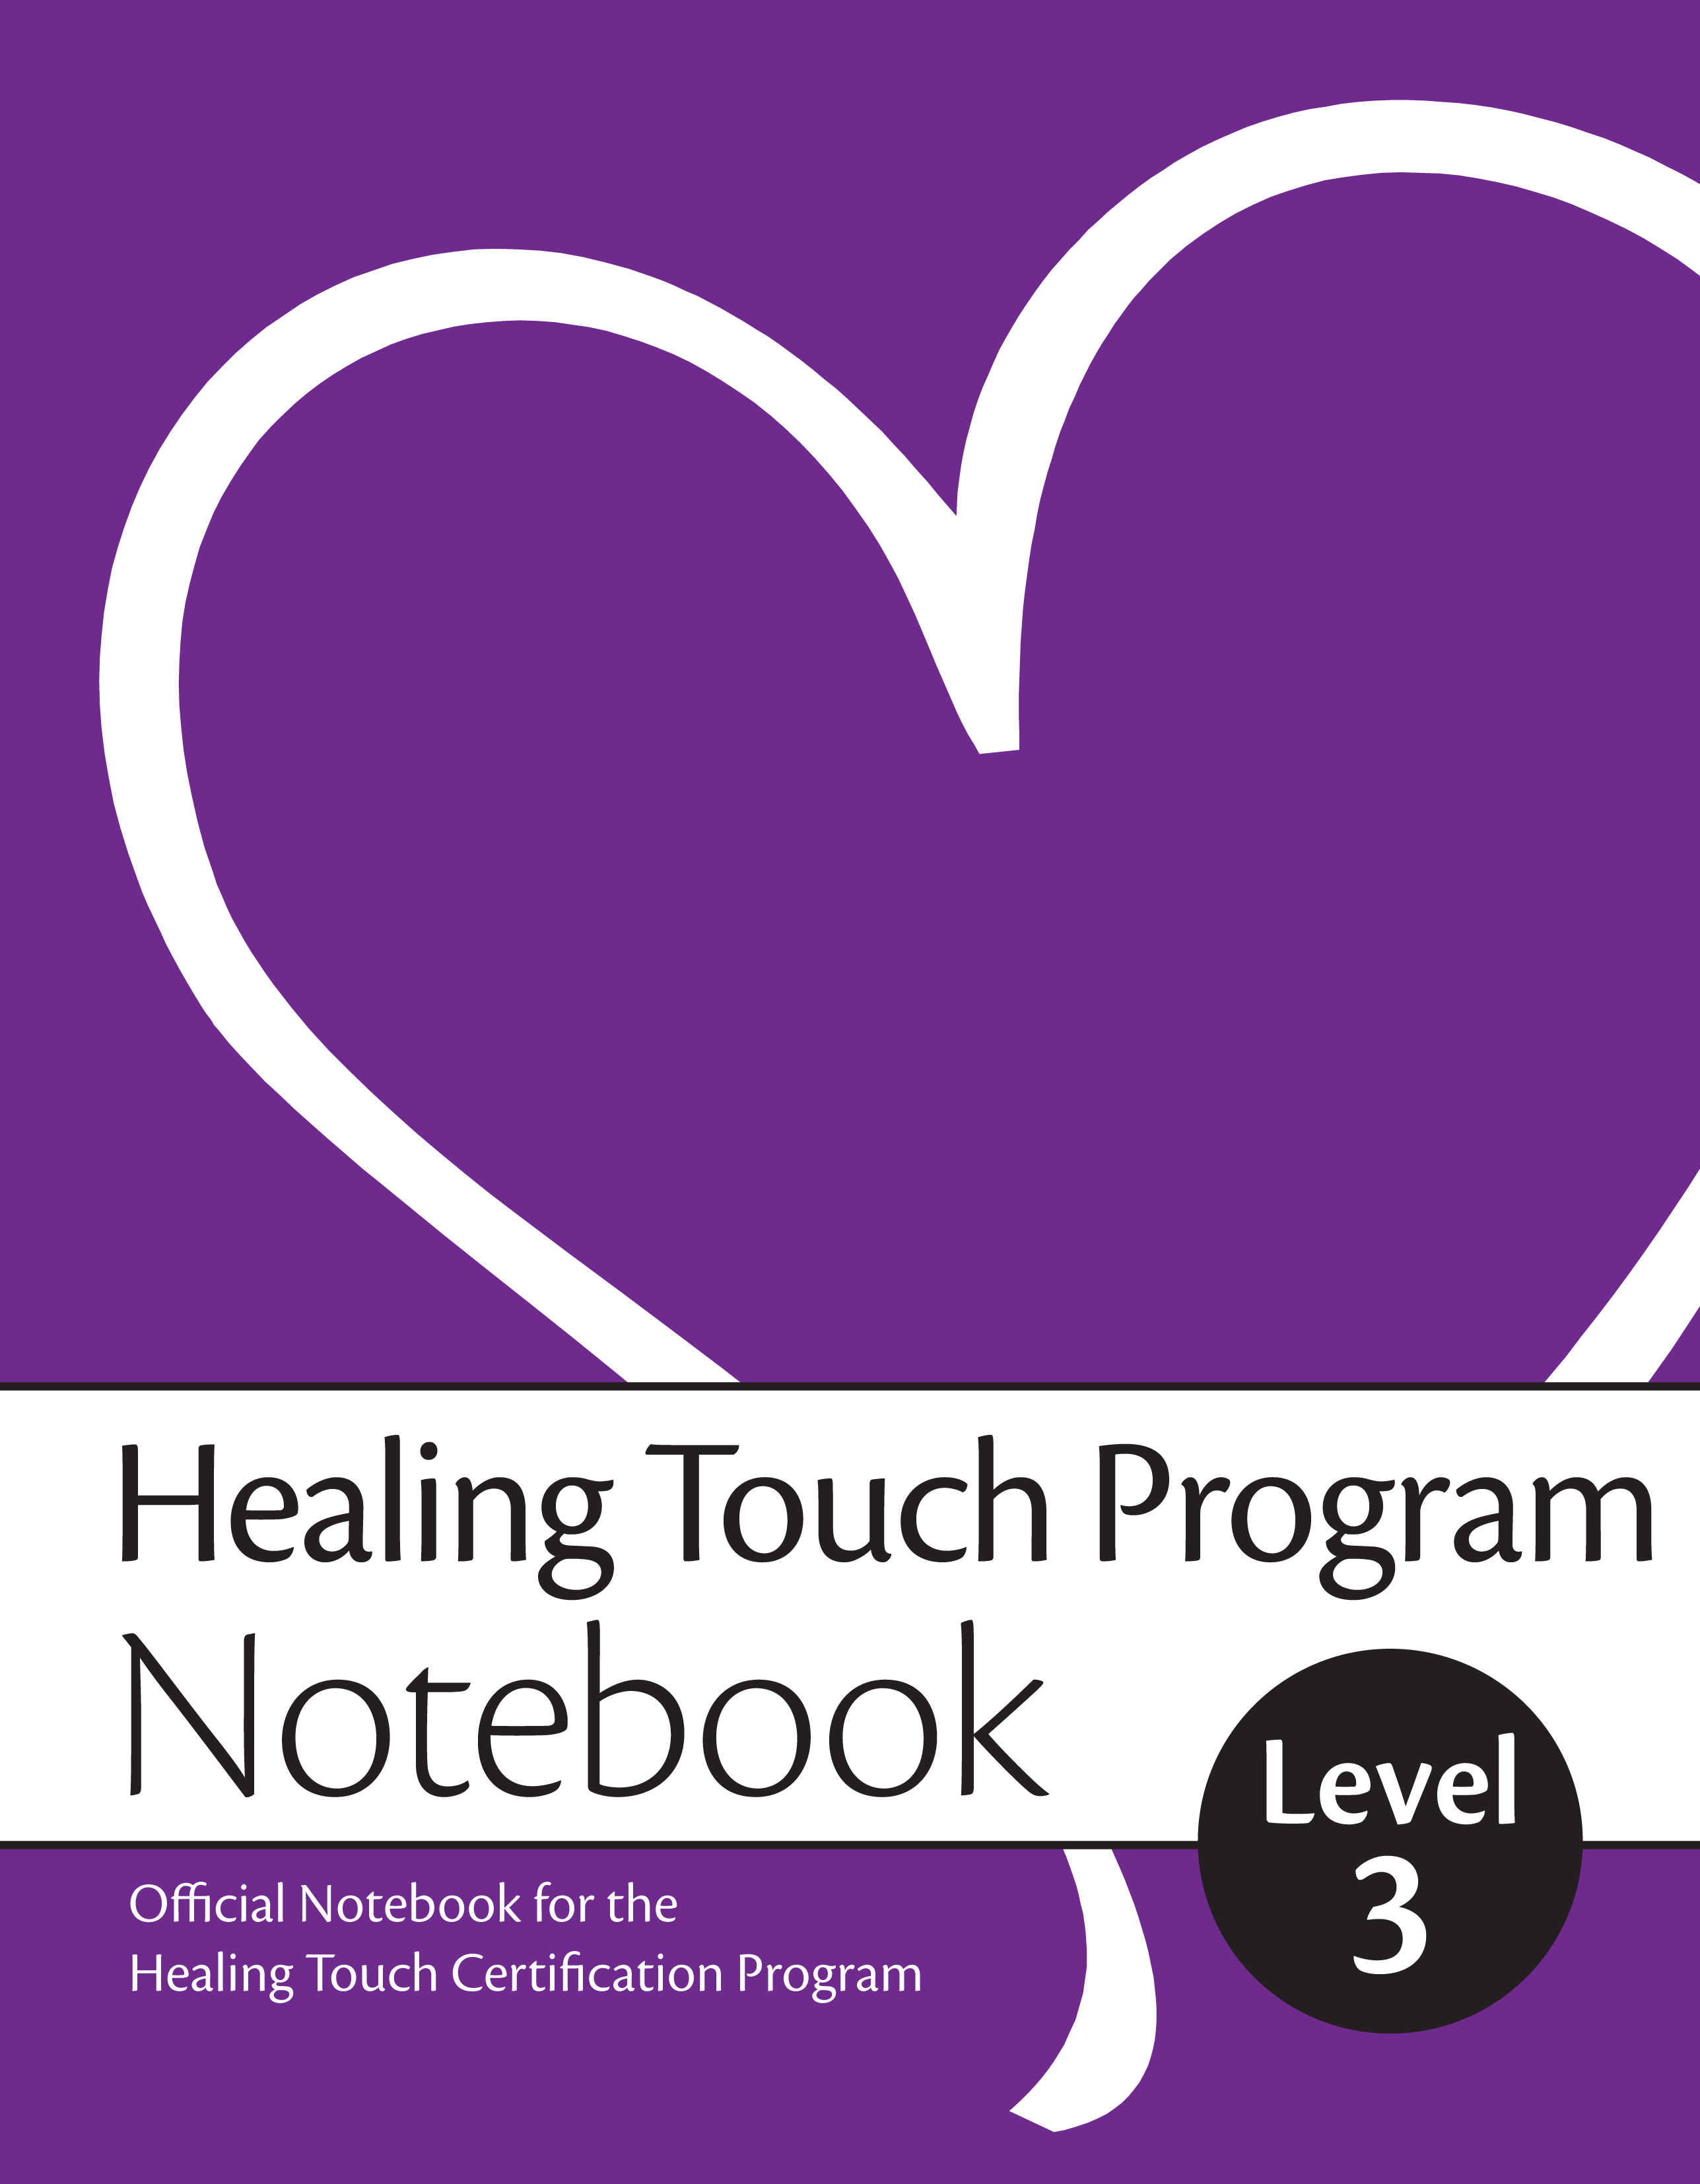 Level 3 Notebook